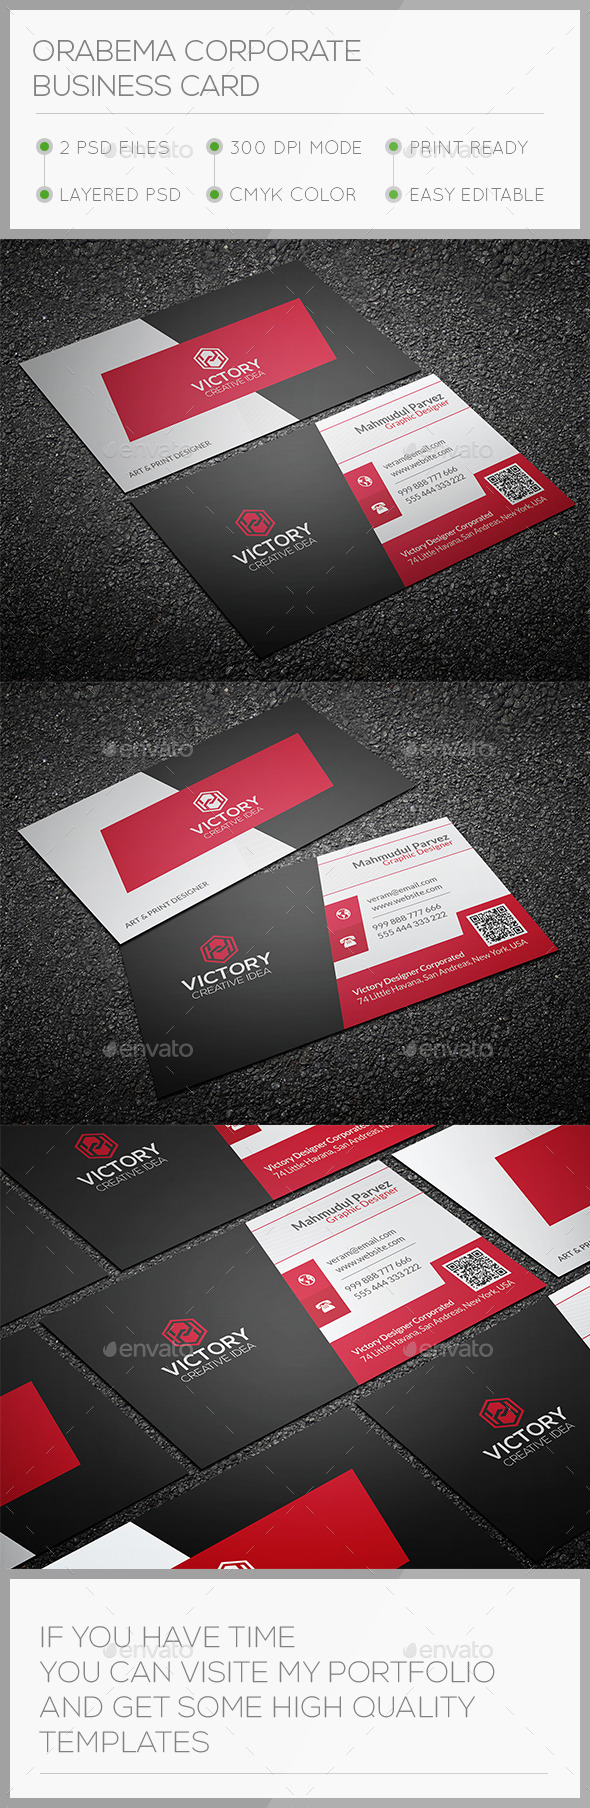 Orabema Corporate Business Card - Corporate Business Cards